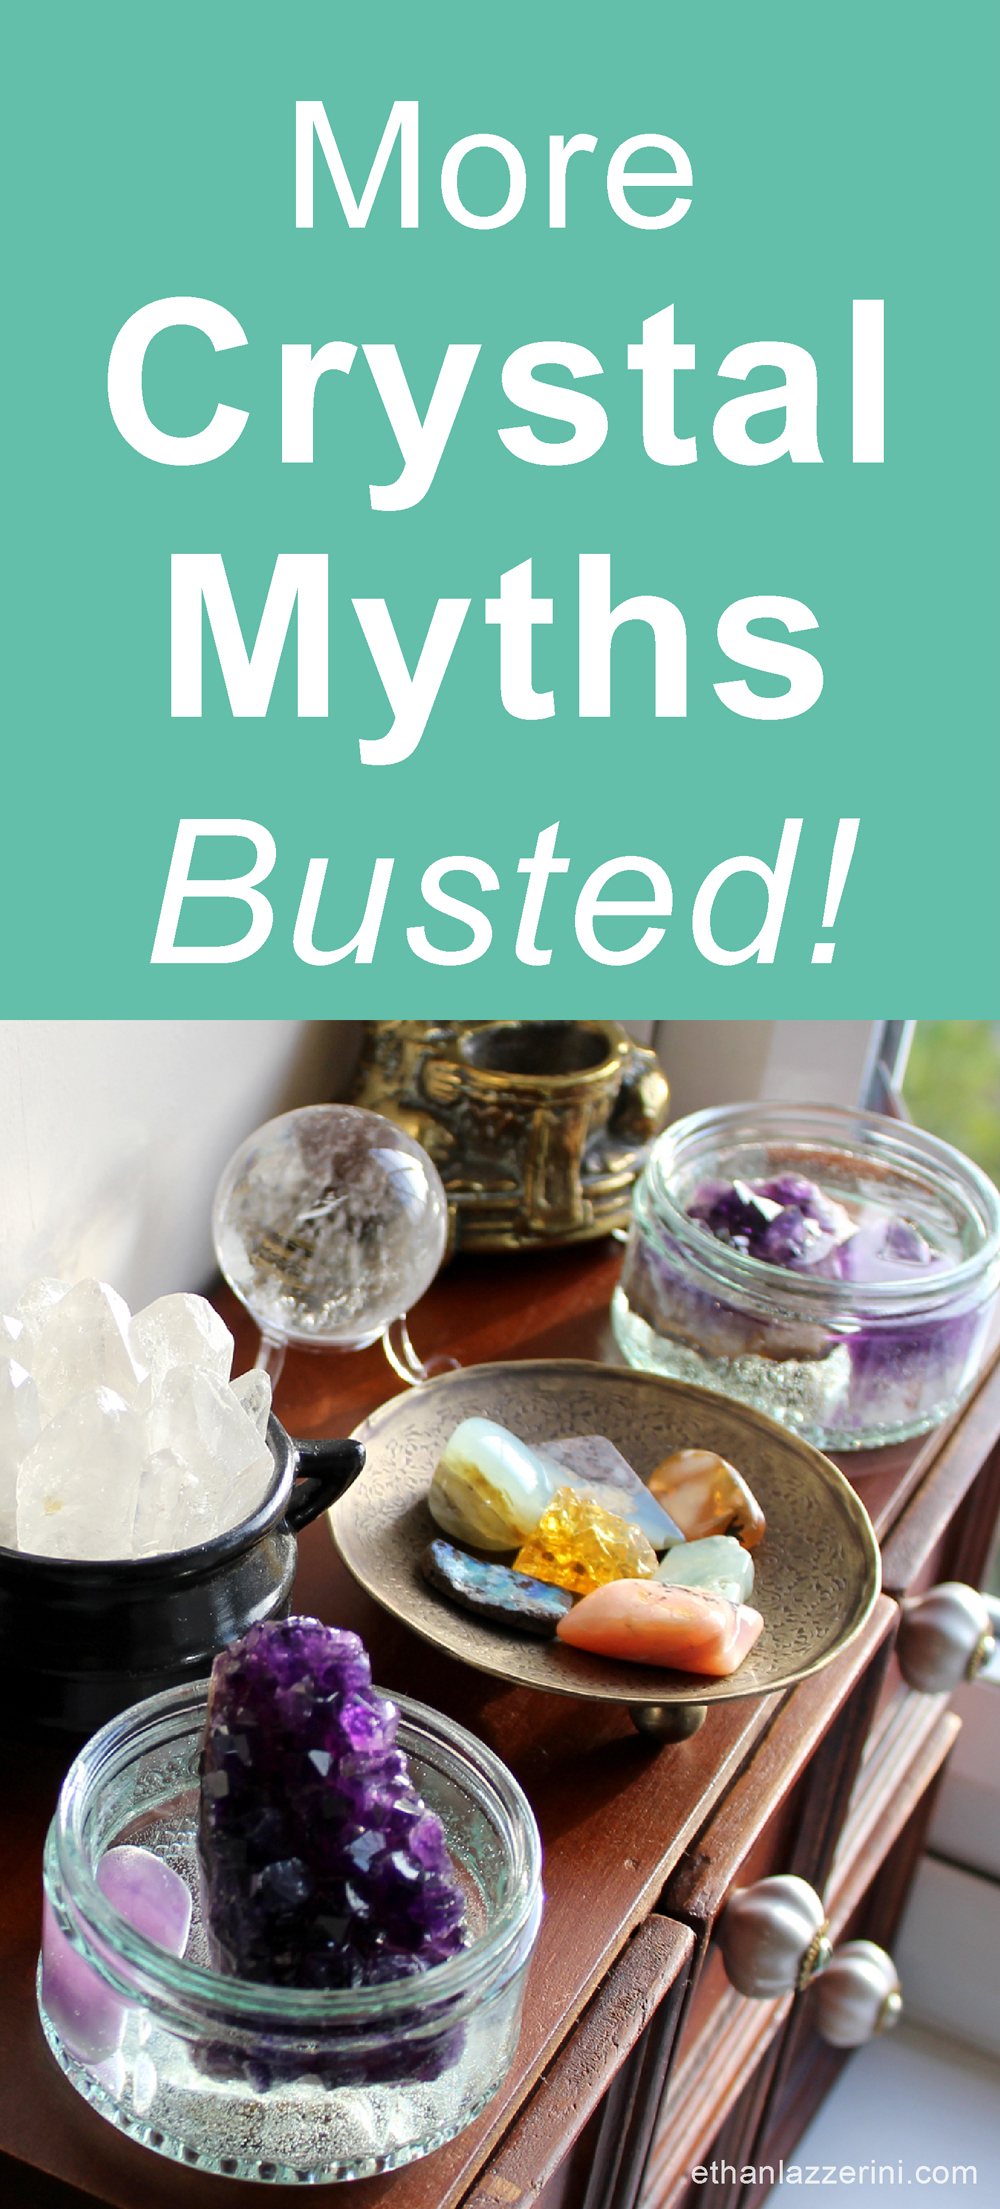 Crystal myths busted